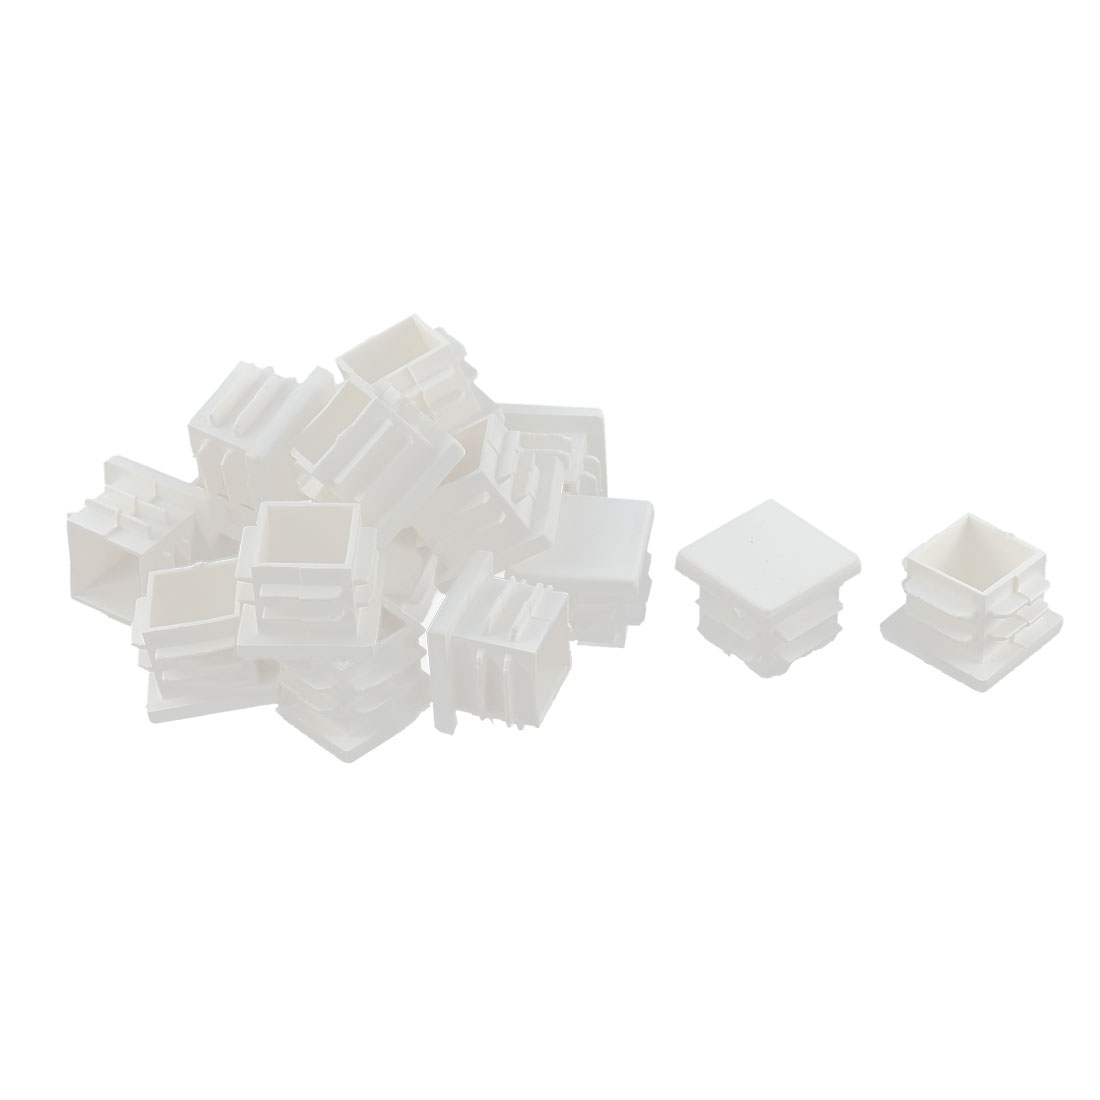 Table Chair Legs Feet Box Section Plastic Square Tube Inserts White 16pcs